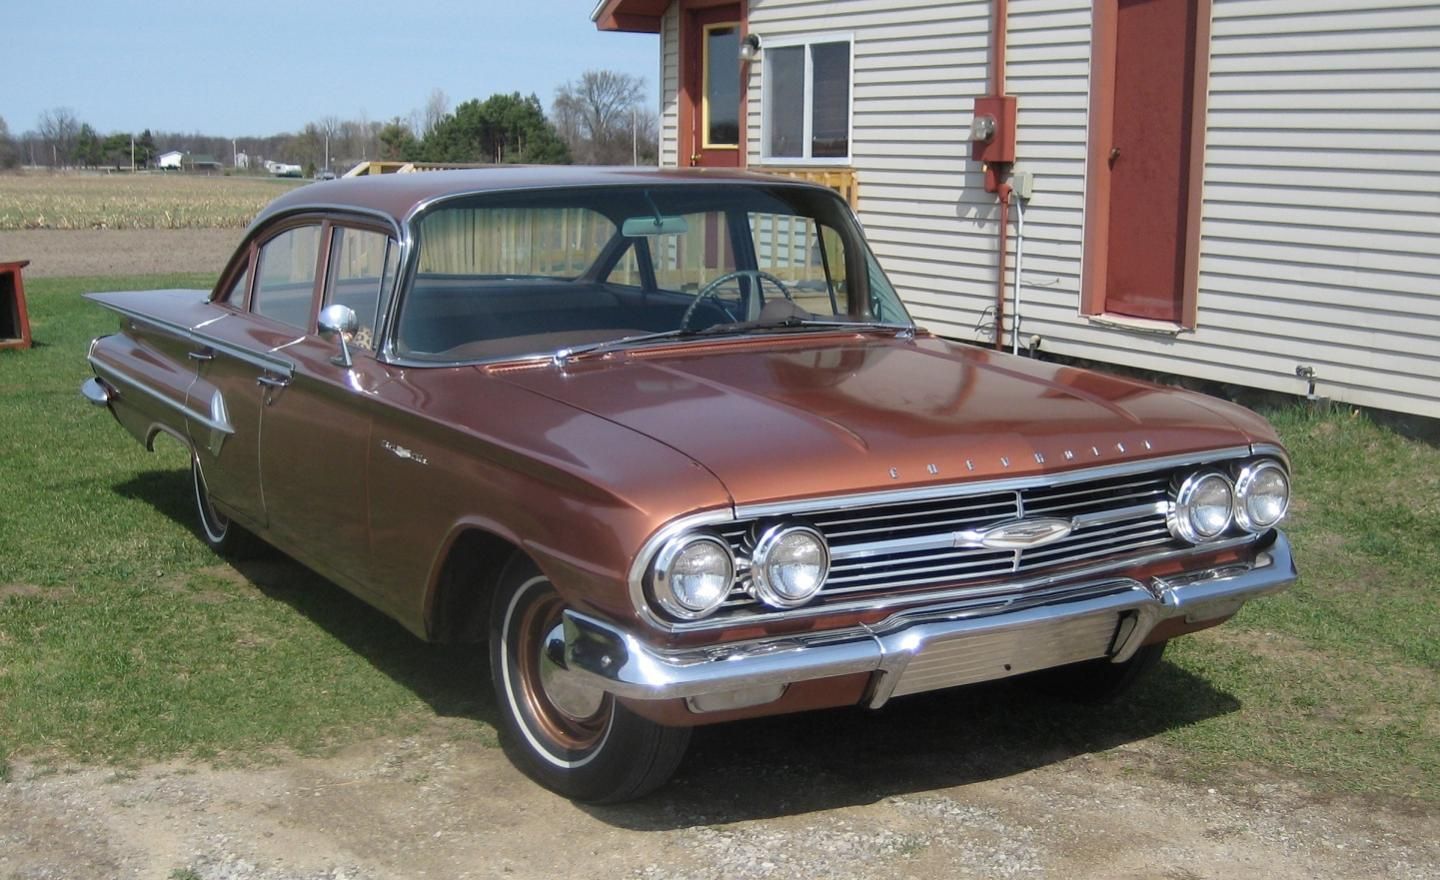 All Chevy 1960 chevrolet biscayne 2 door : 1960 Bel Air 283 2bbl value - Chevy Impala Forums